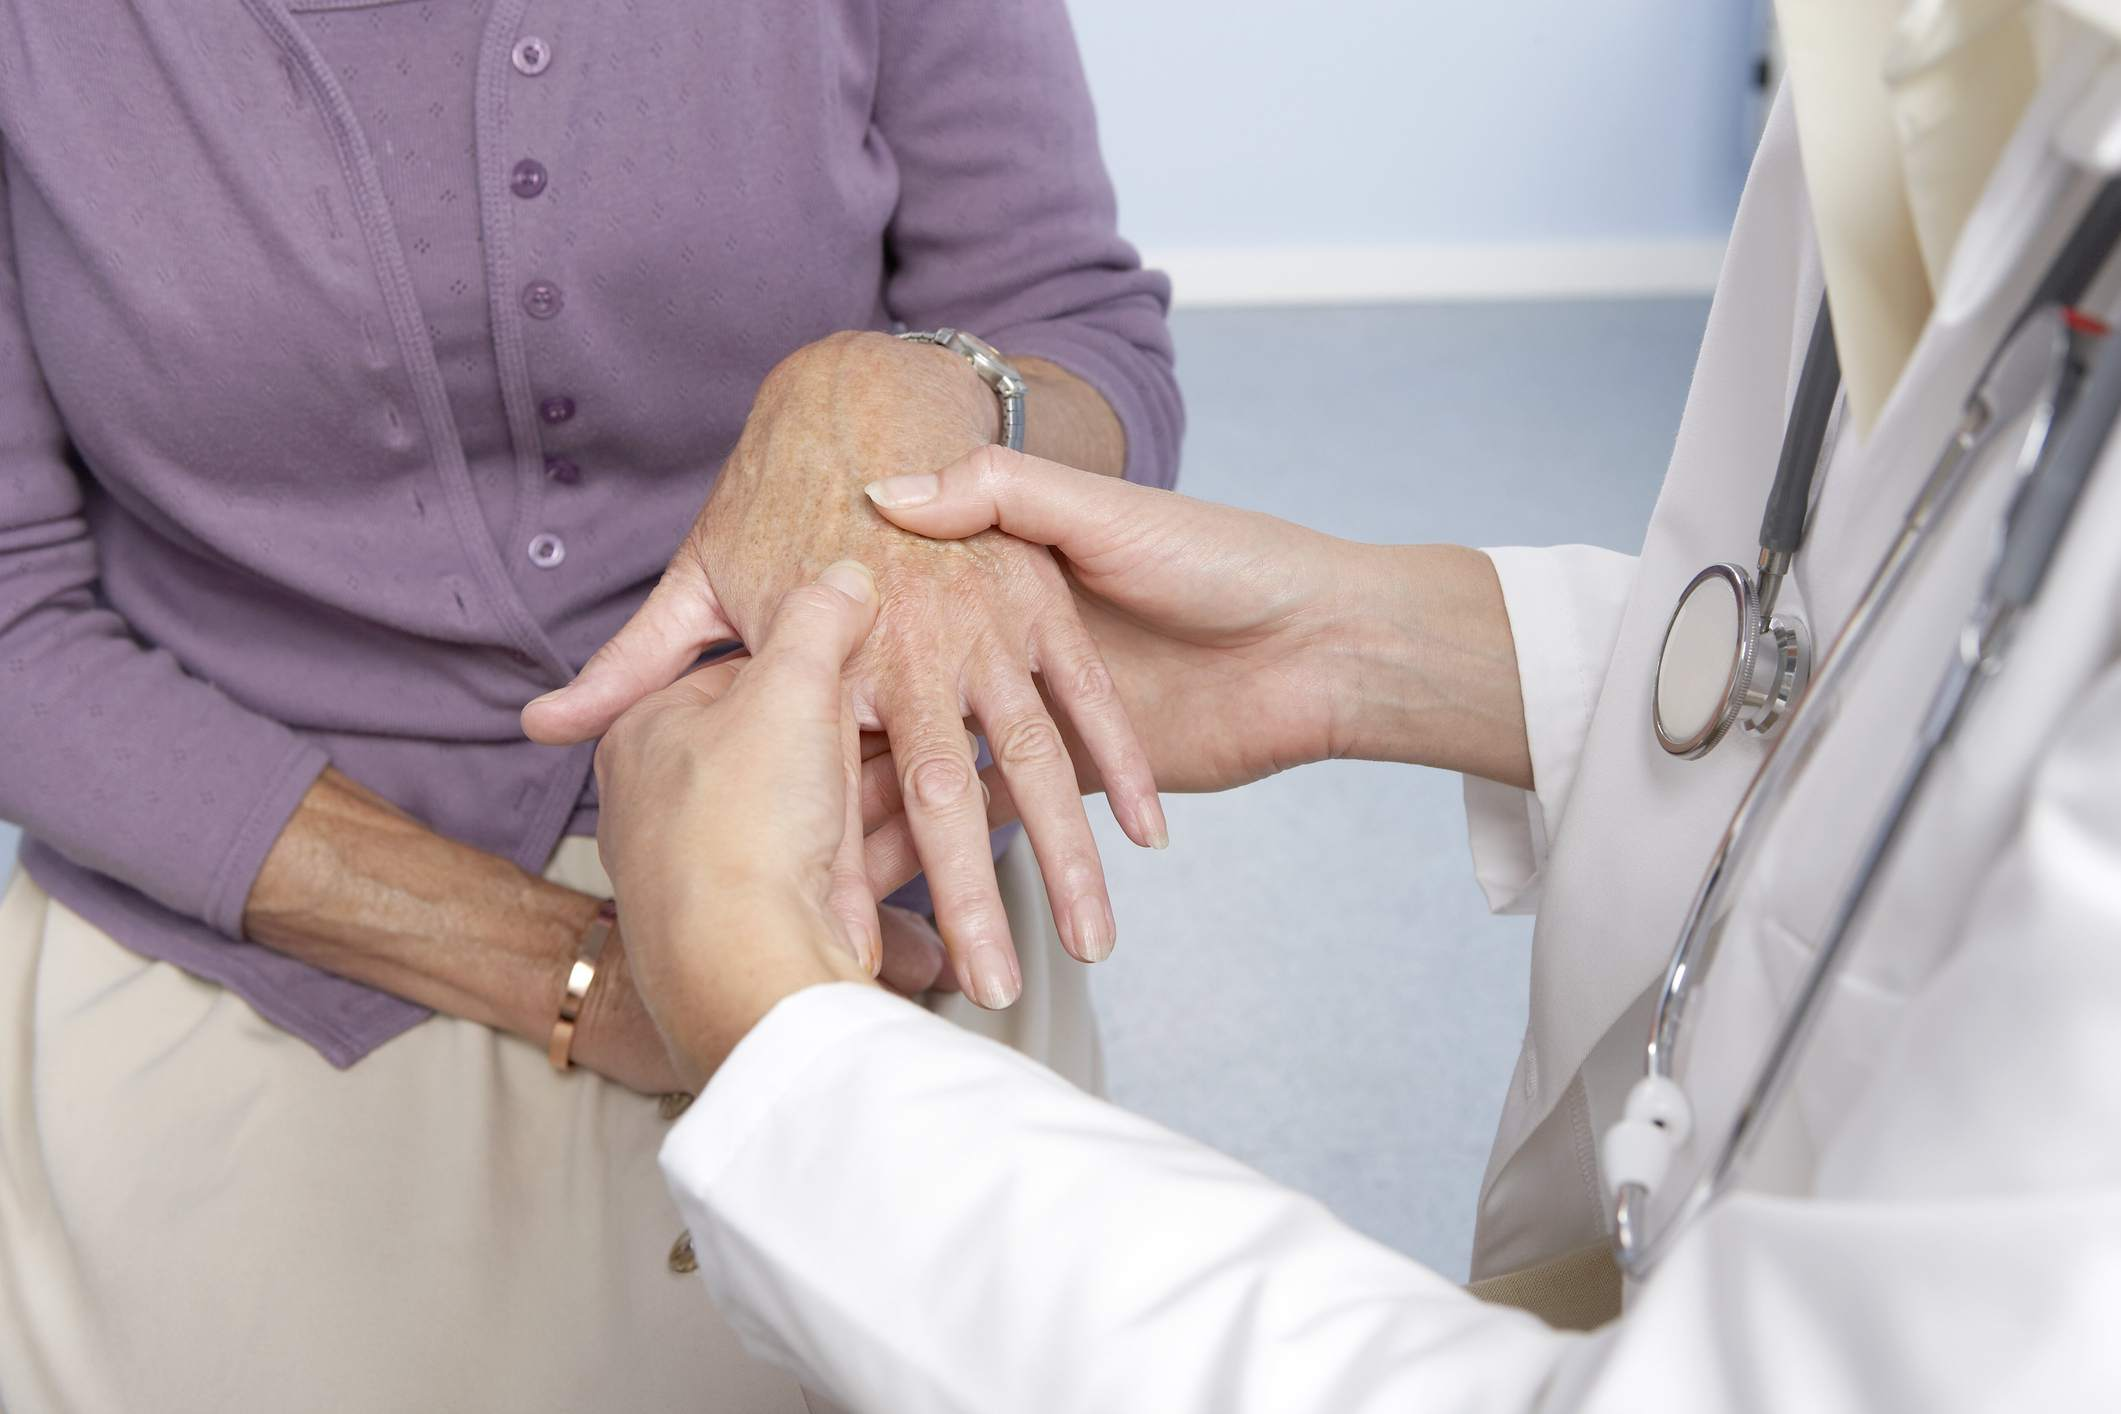 Photo of a doctor examining a woman's hand.